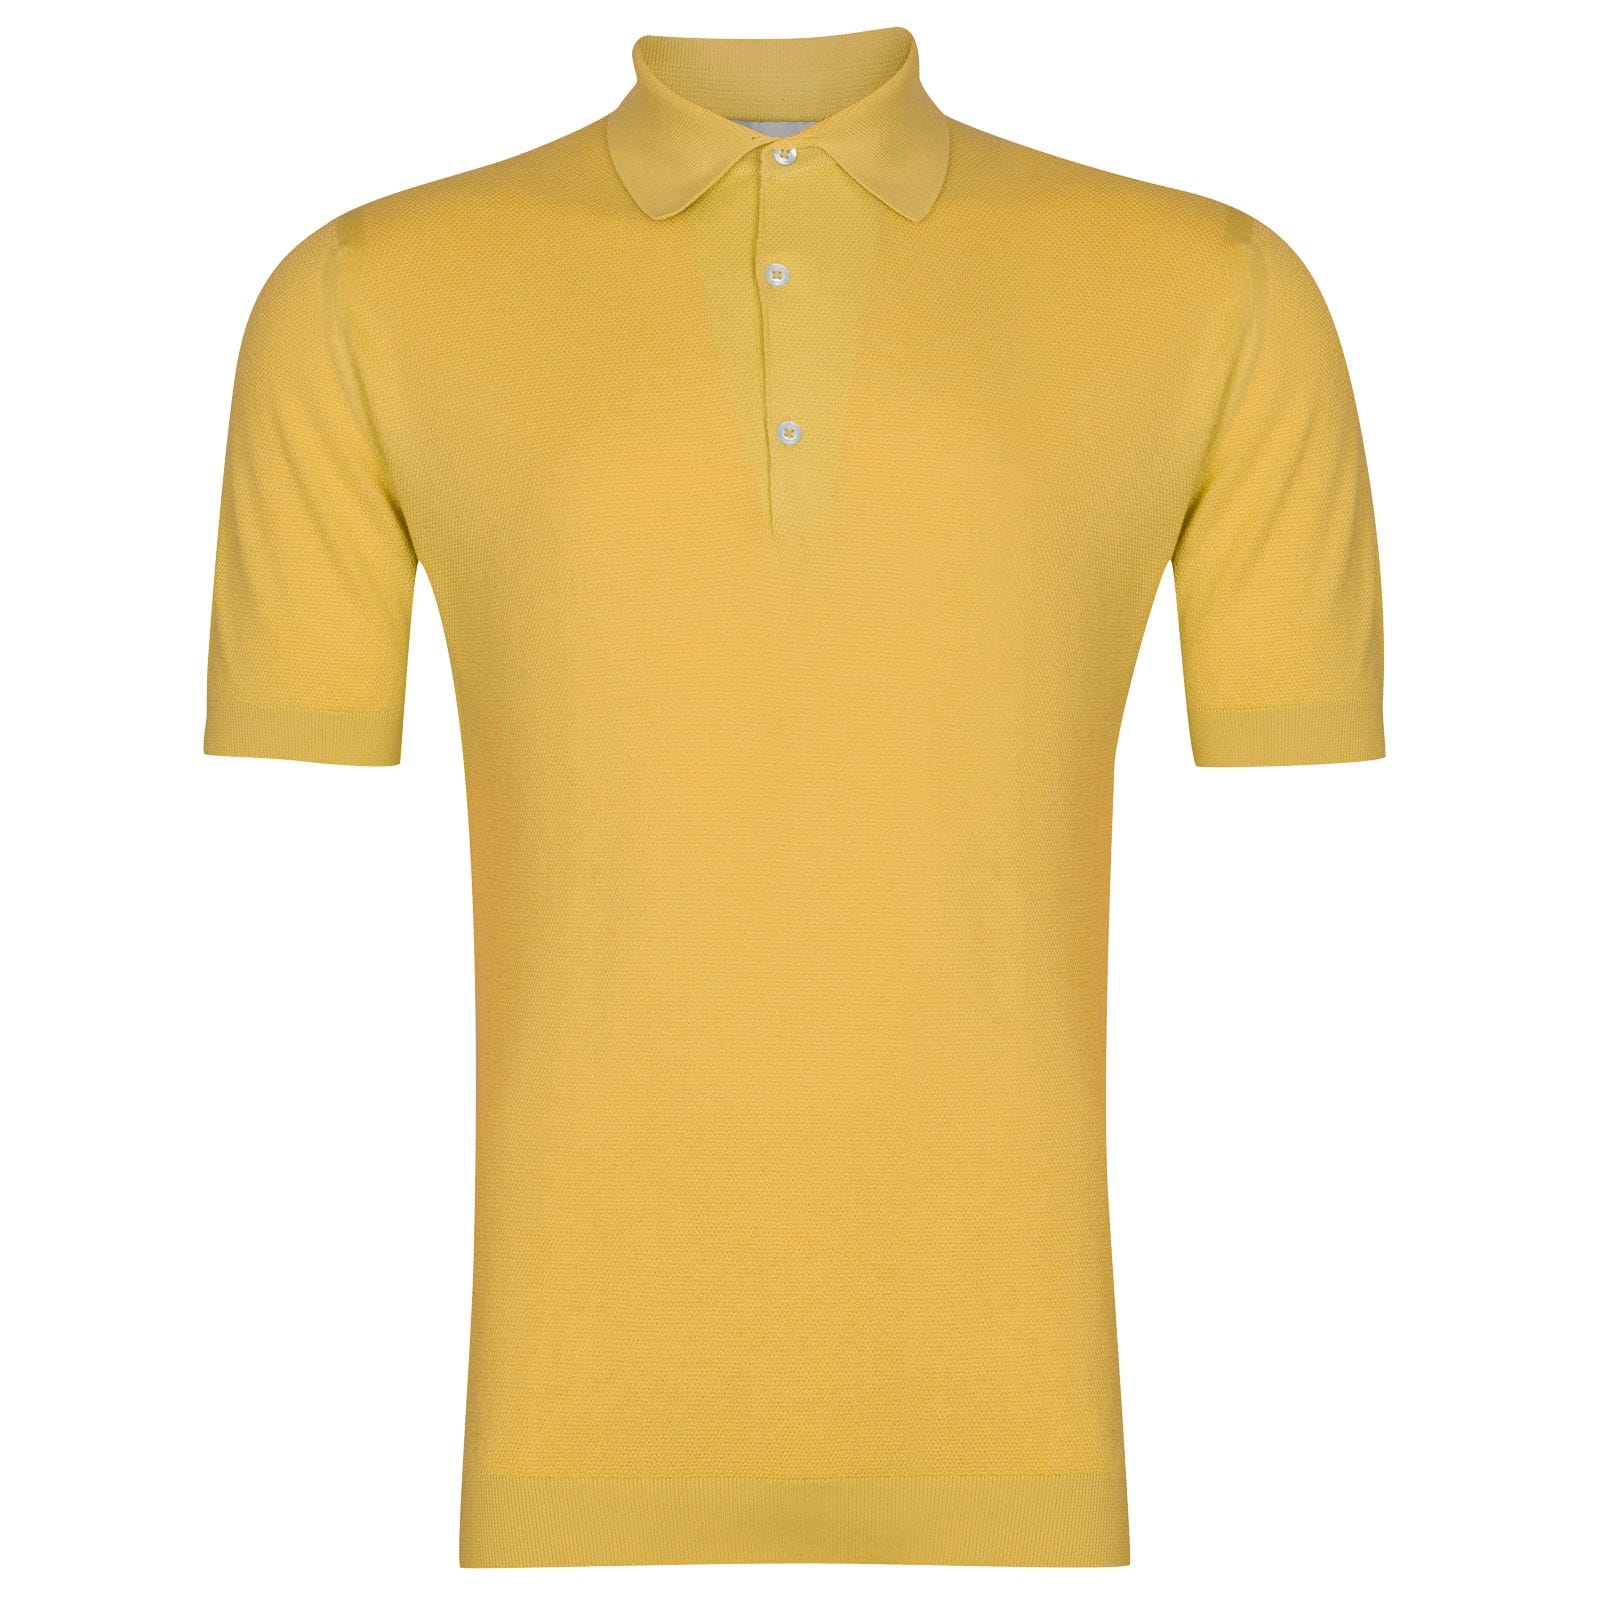 John Smedley Roth in Yellow Bloom Shirt-XLG